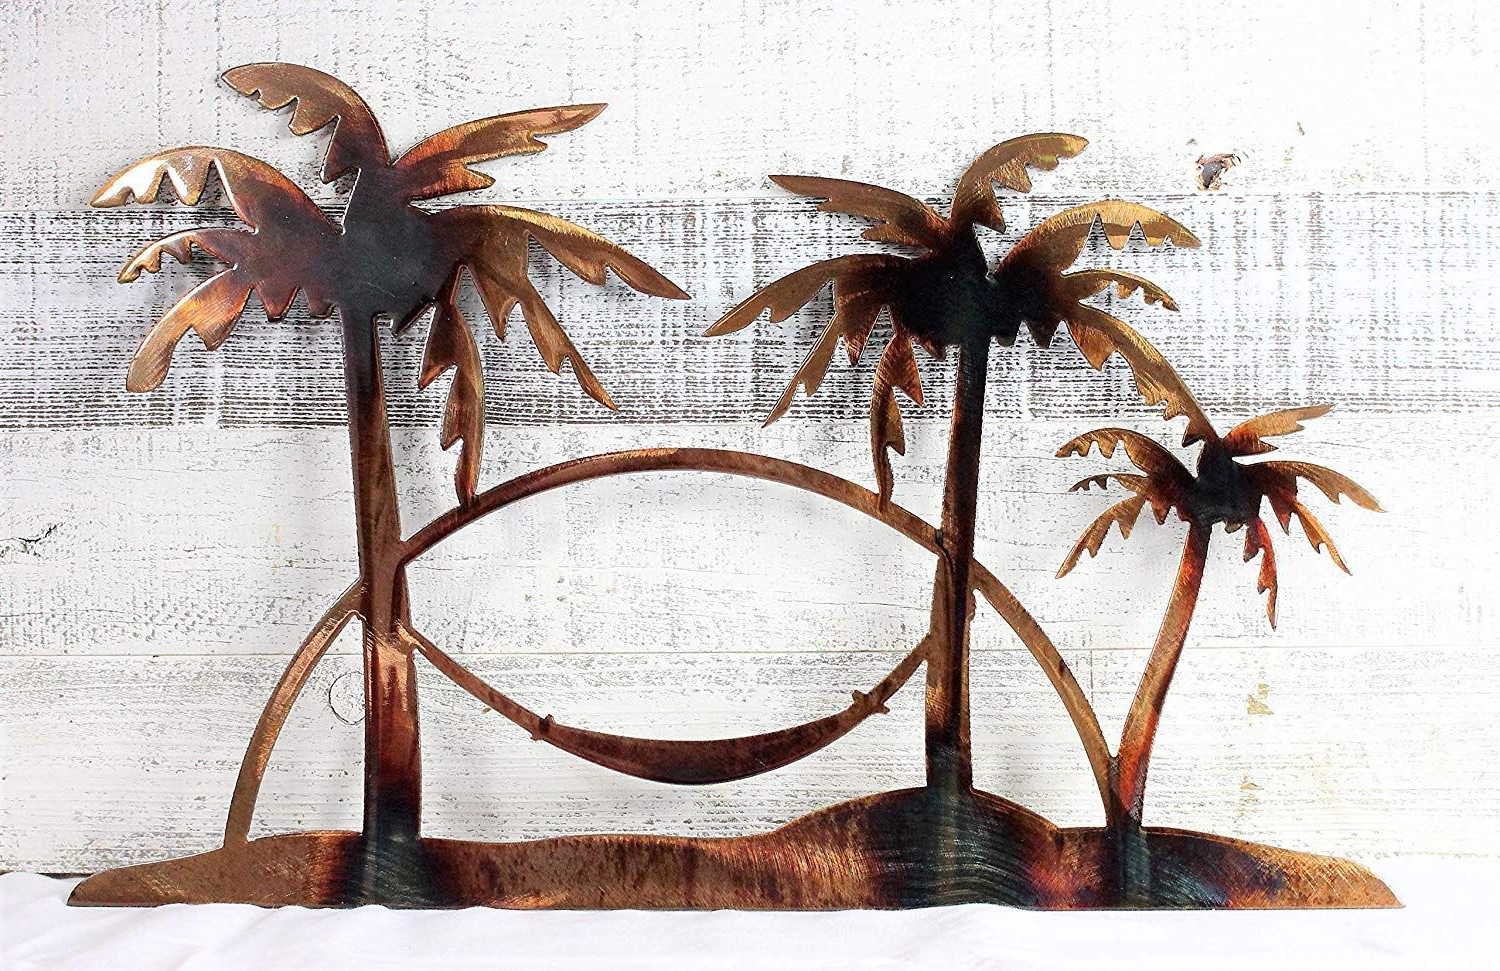 Palm Tree Wall Art & Palm Tree Wall Decor – Beachfront Decor With Regard To Most Current Blended Fabric Palm Tree Wall Hangings (View 6 of 20)